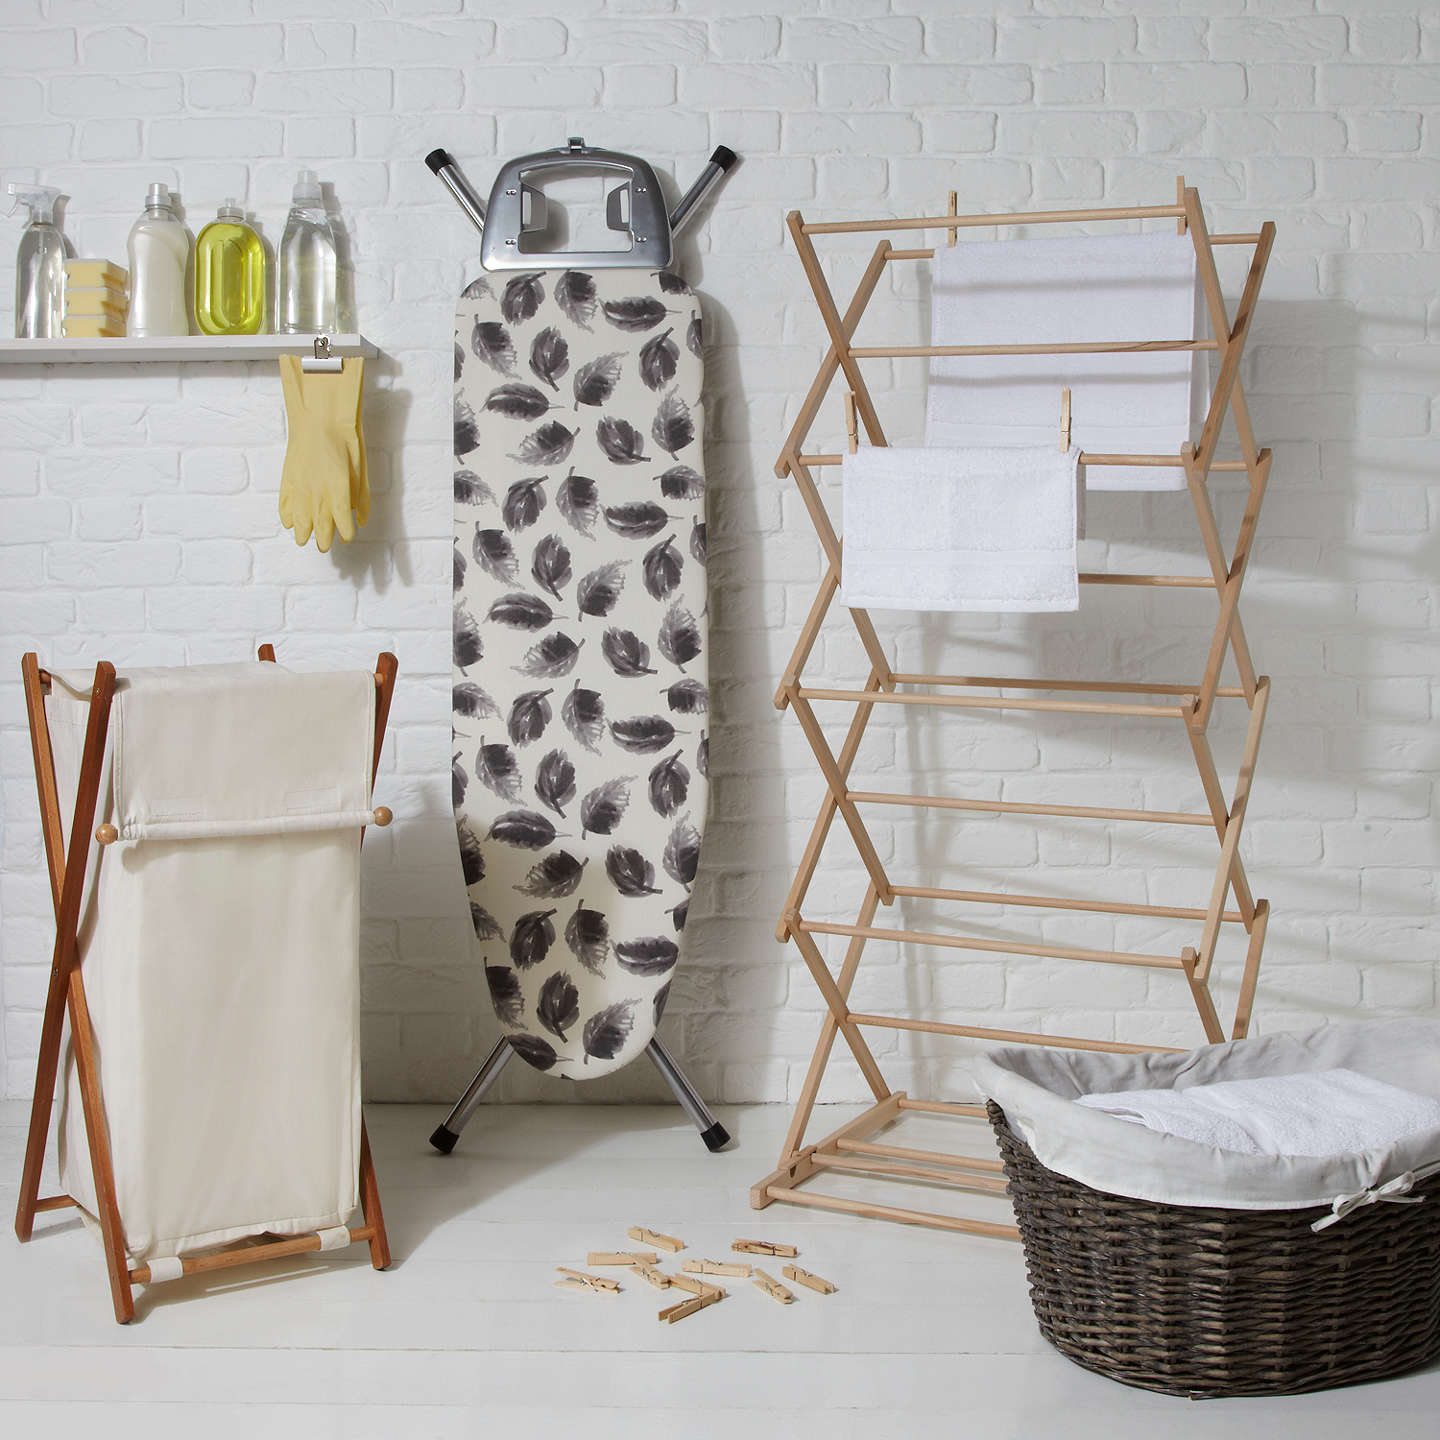 BuyJohn Lewis Laundry Hamper Online at johnlewis.com